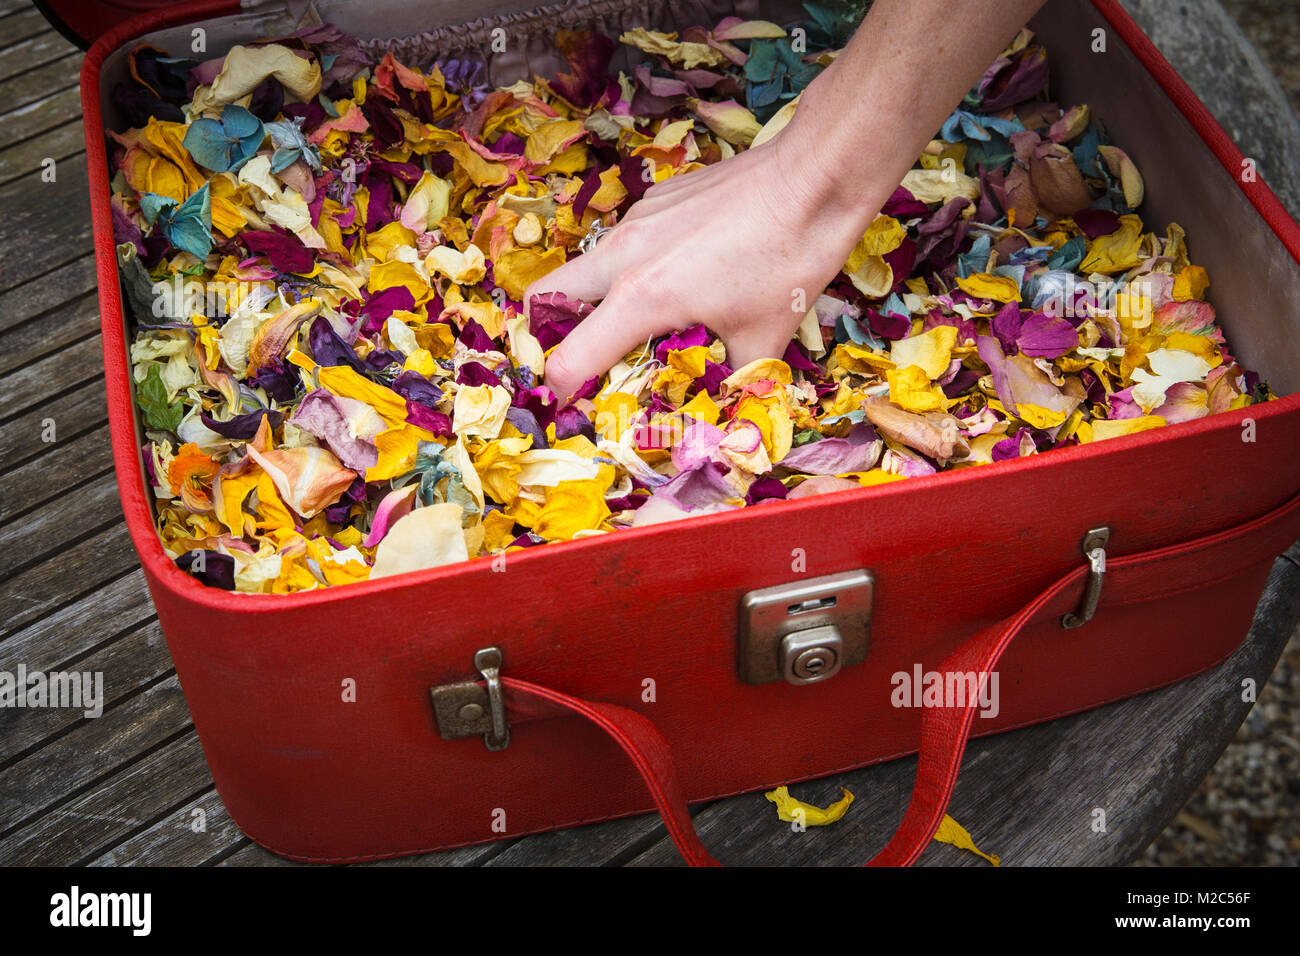 Person grabbing handful of flowers petals from vintage suitcase, close-up - Stock Image